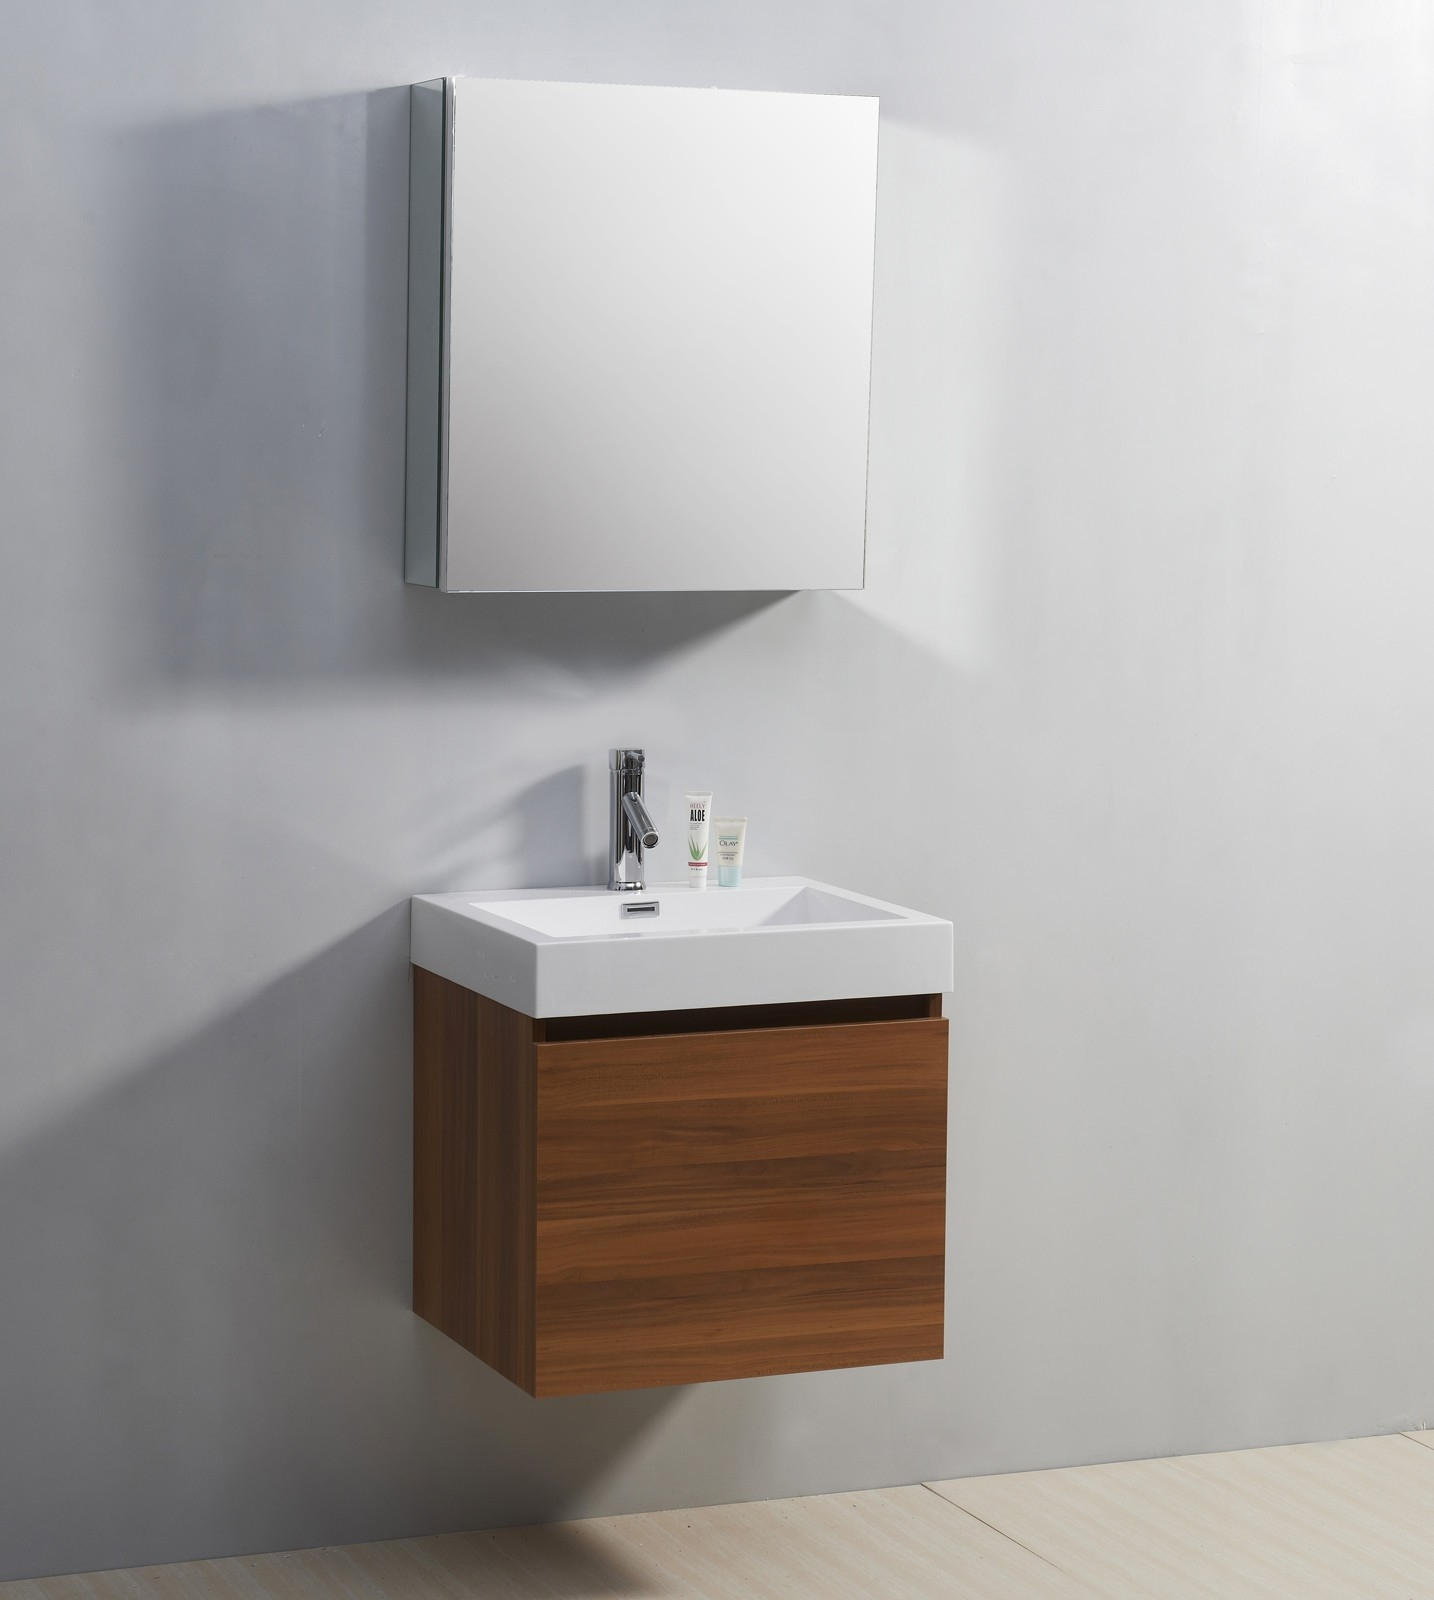 Bathroom Sinks And Vanities For Small Spaces